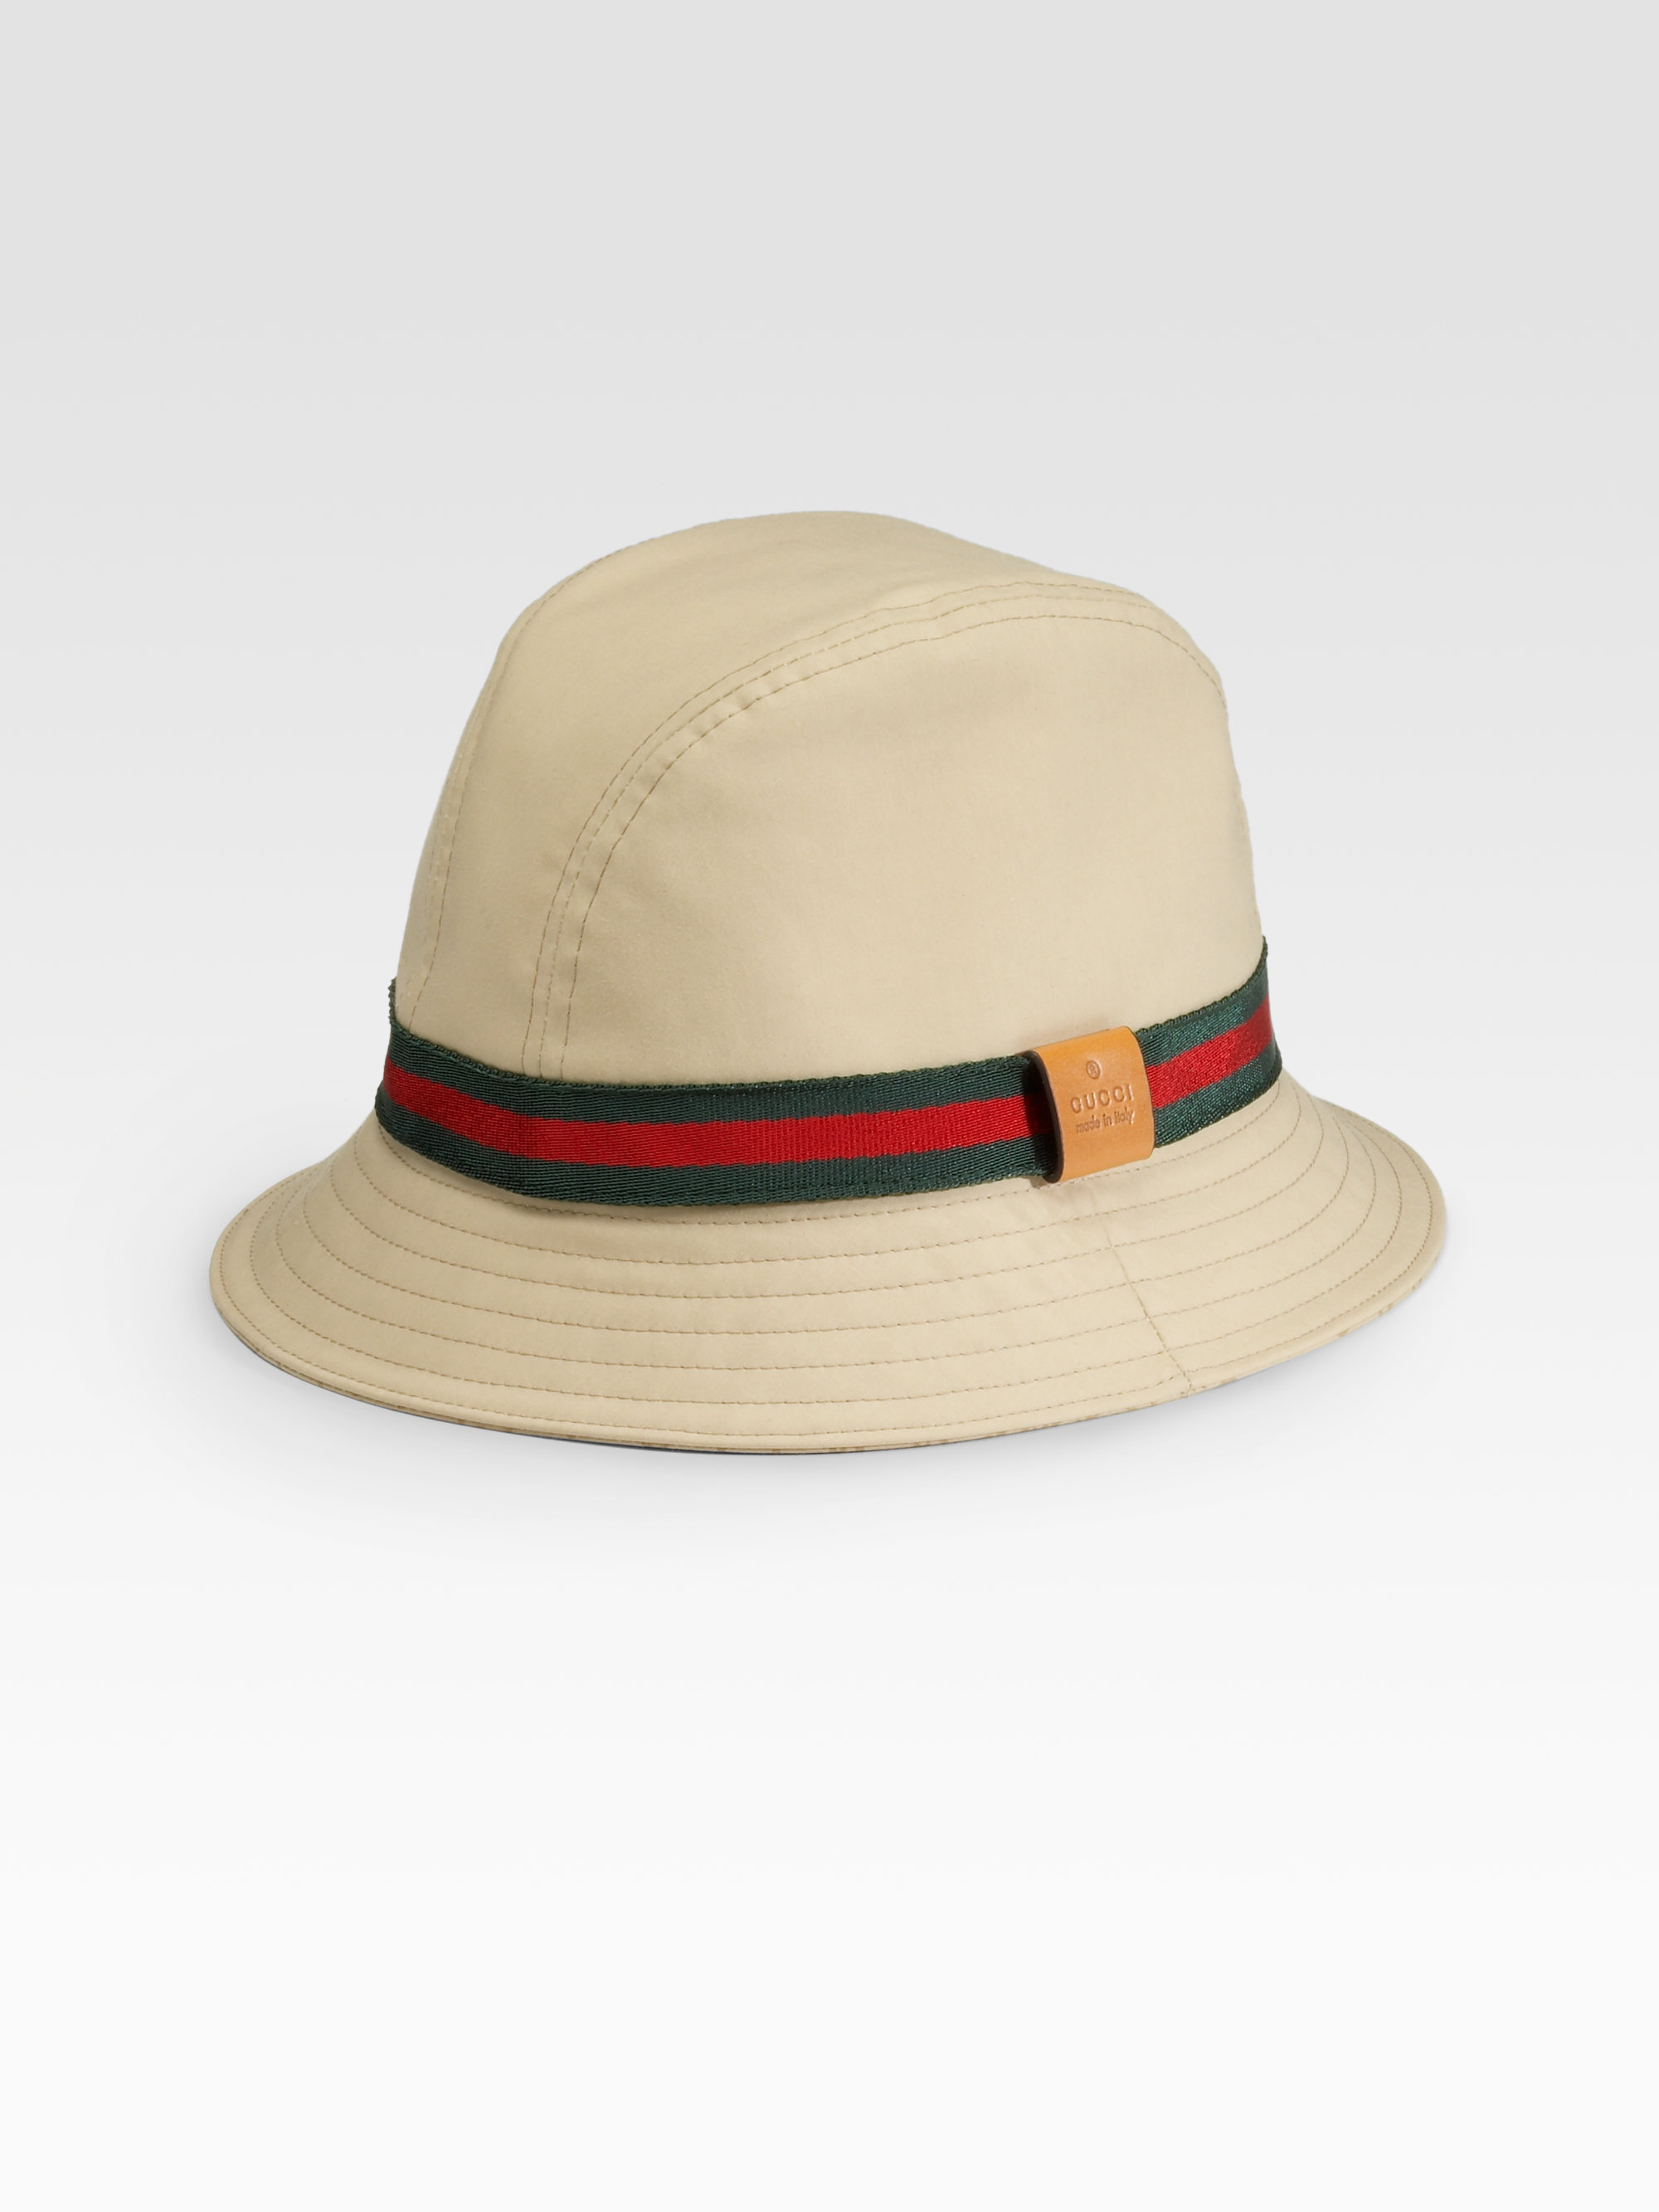 gucci bucket hat in natural for men lyst. Black Bedroom Furniture Sets. Home Design Ideas